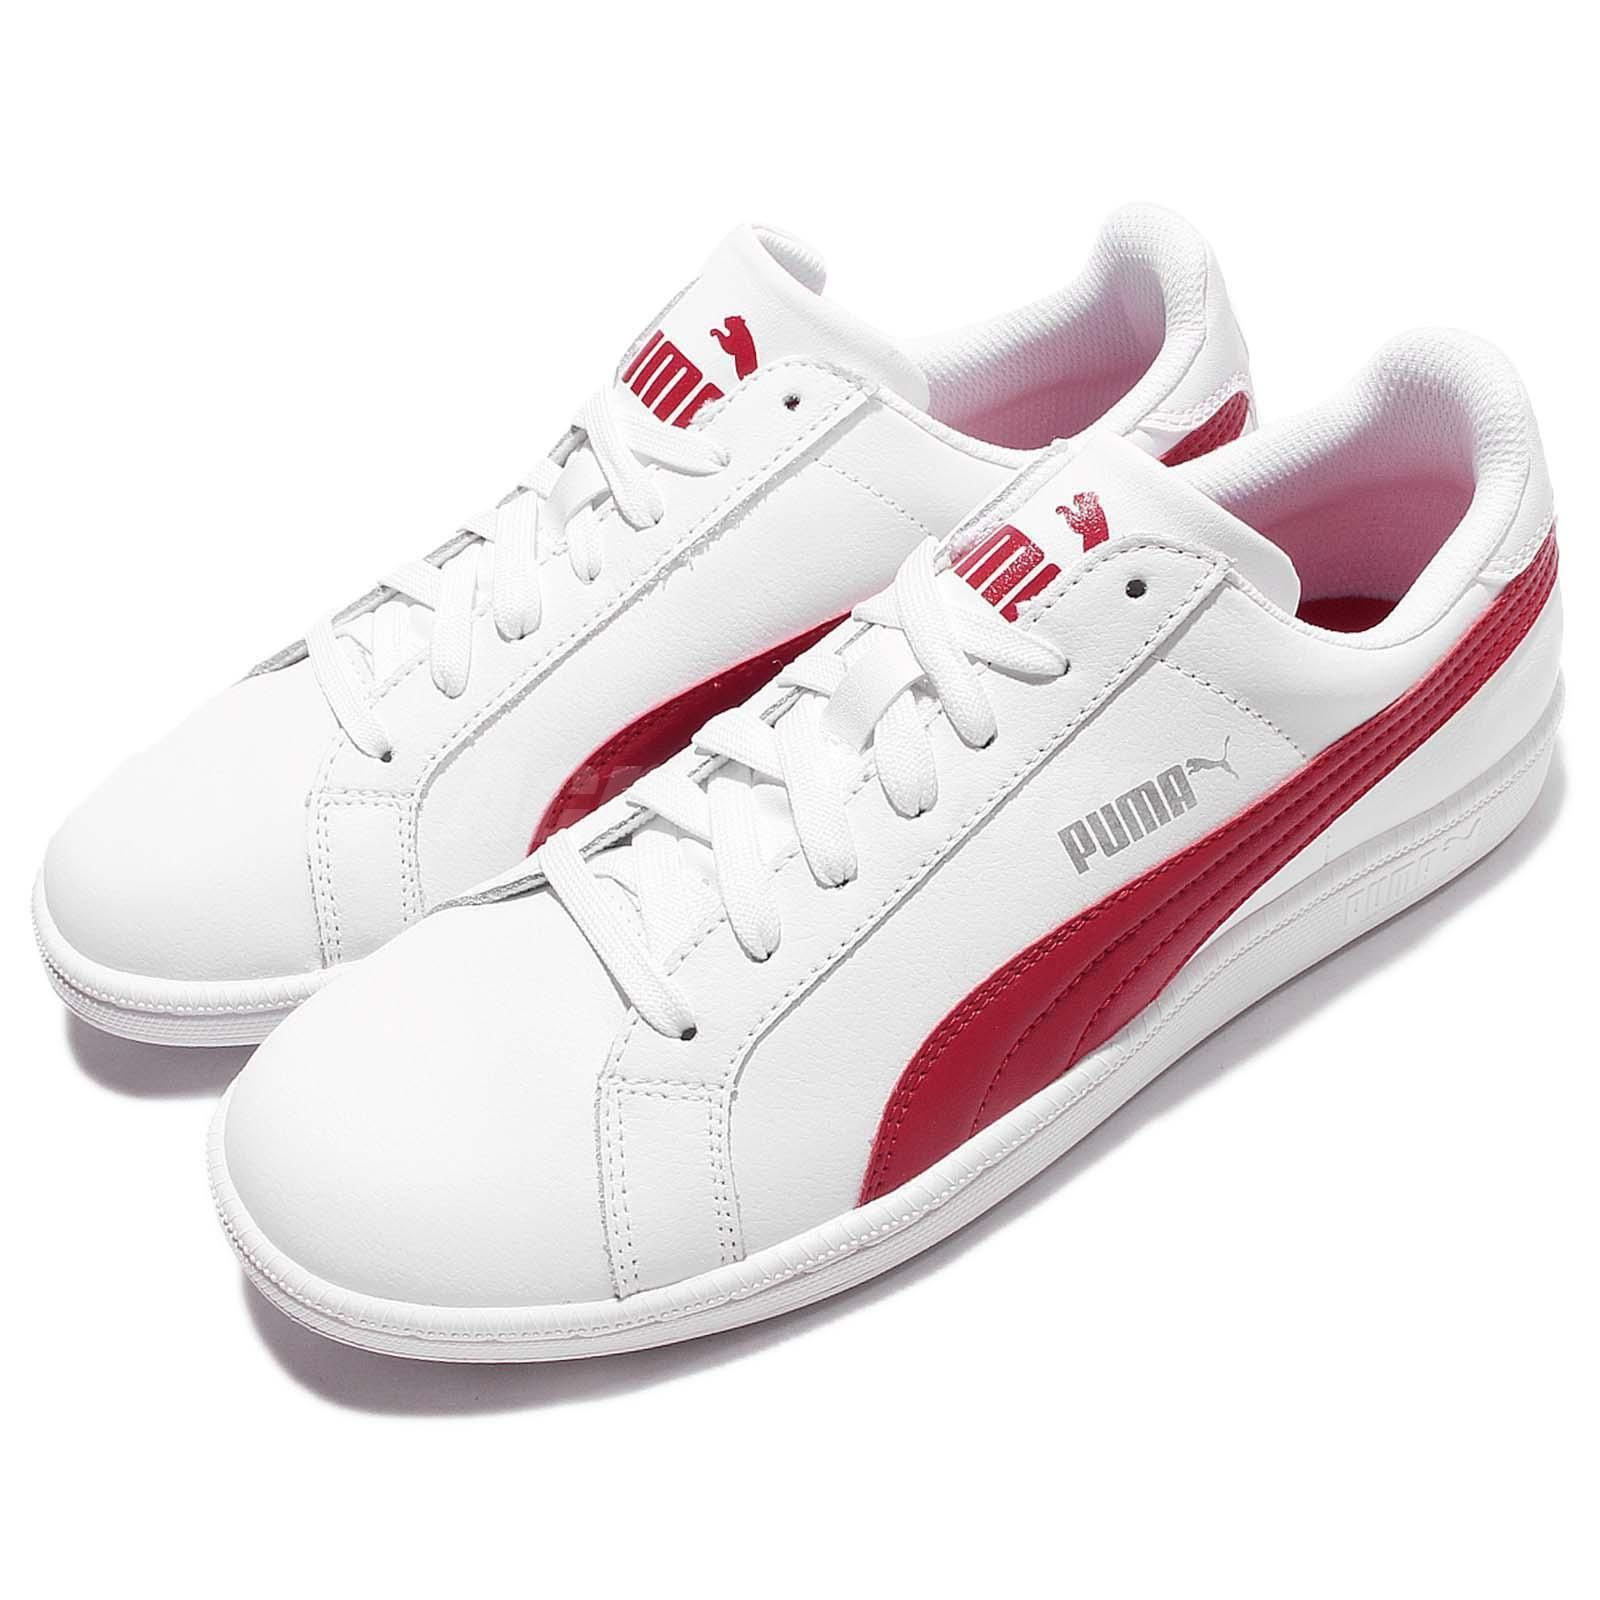 Puma Smash L White Red Retro Leather Mens Tennis Shoes Casual Sneakers  356722-18 992cd9a73fd